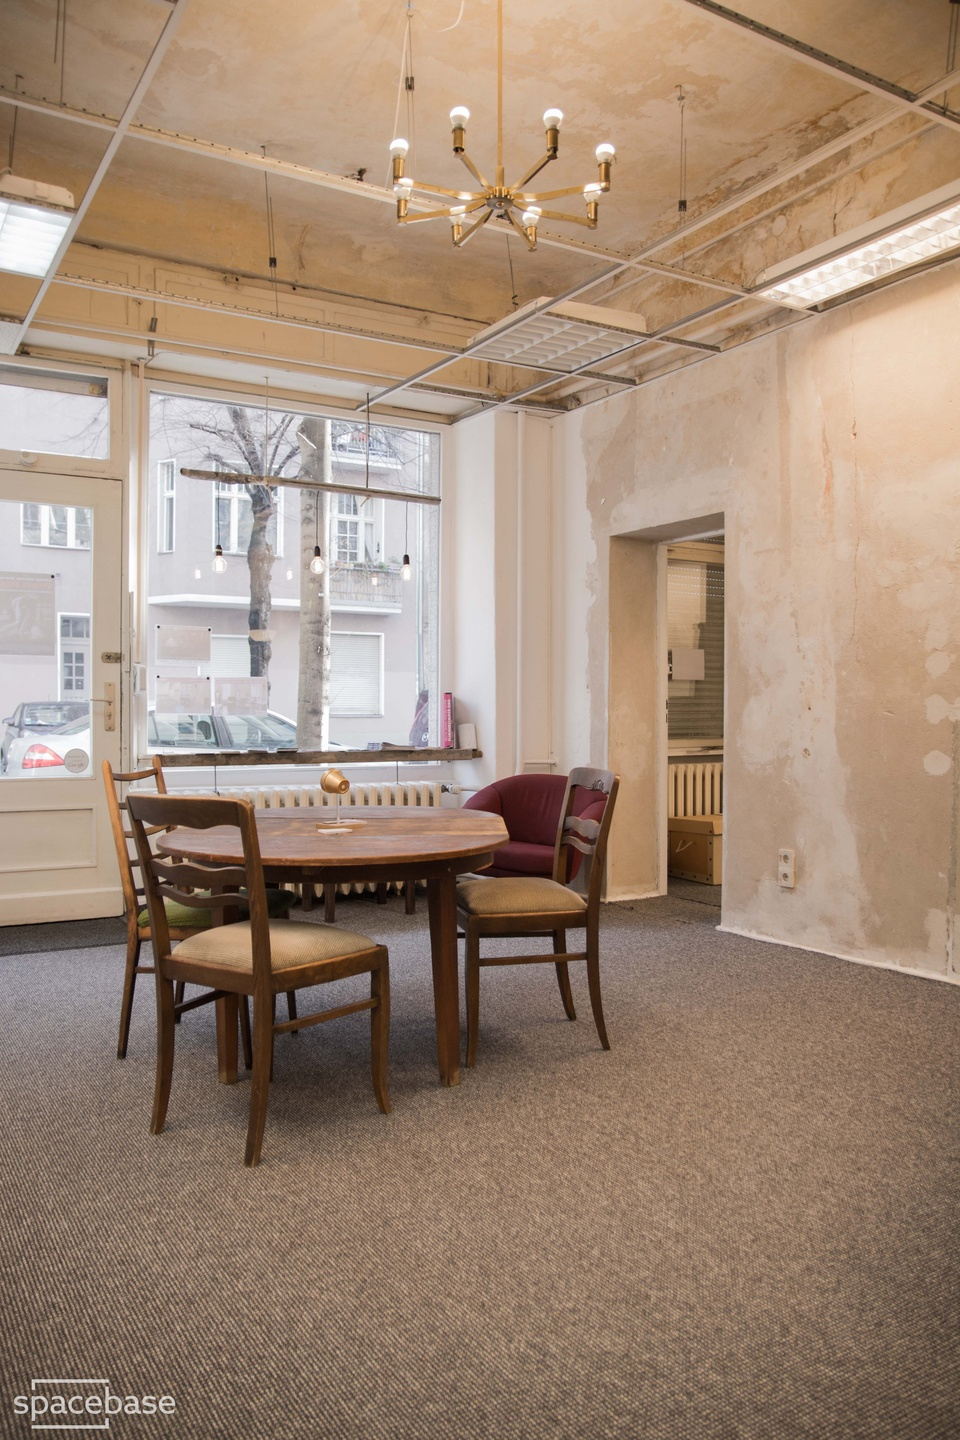 Berlin conference rooms Coworking space creative office image 1